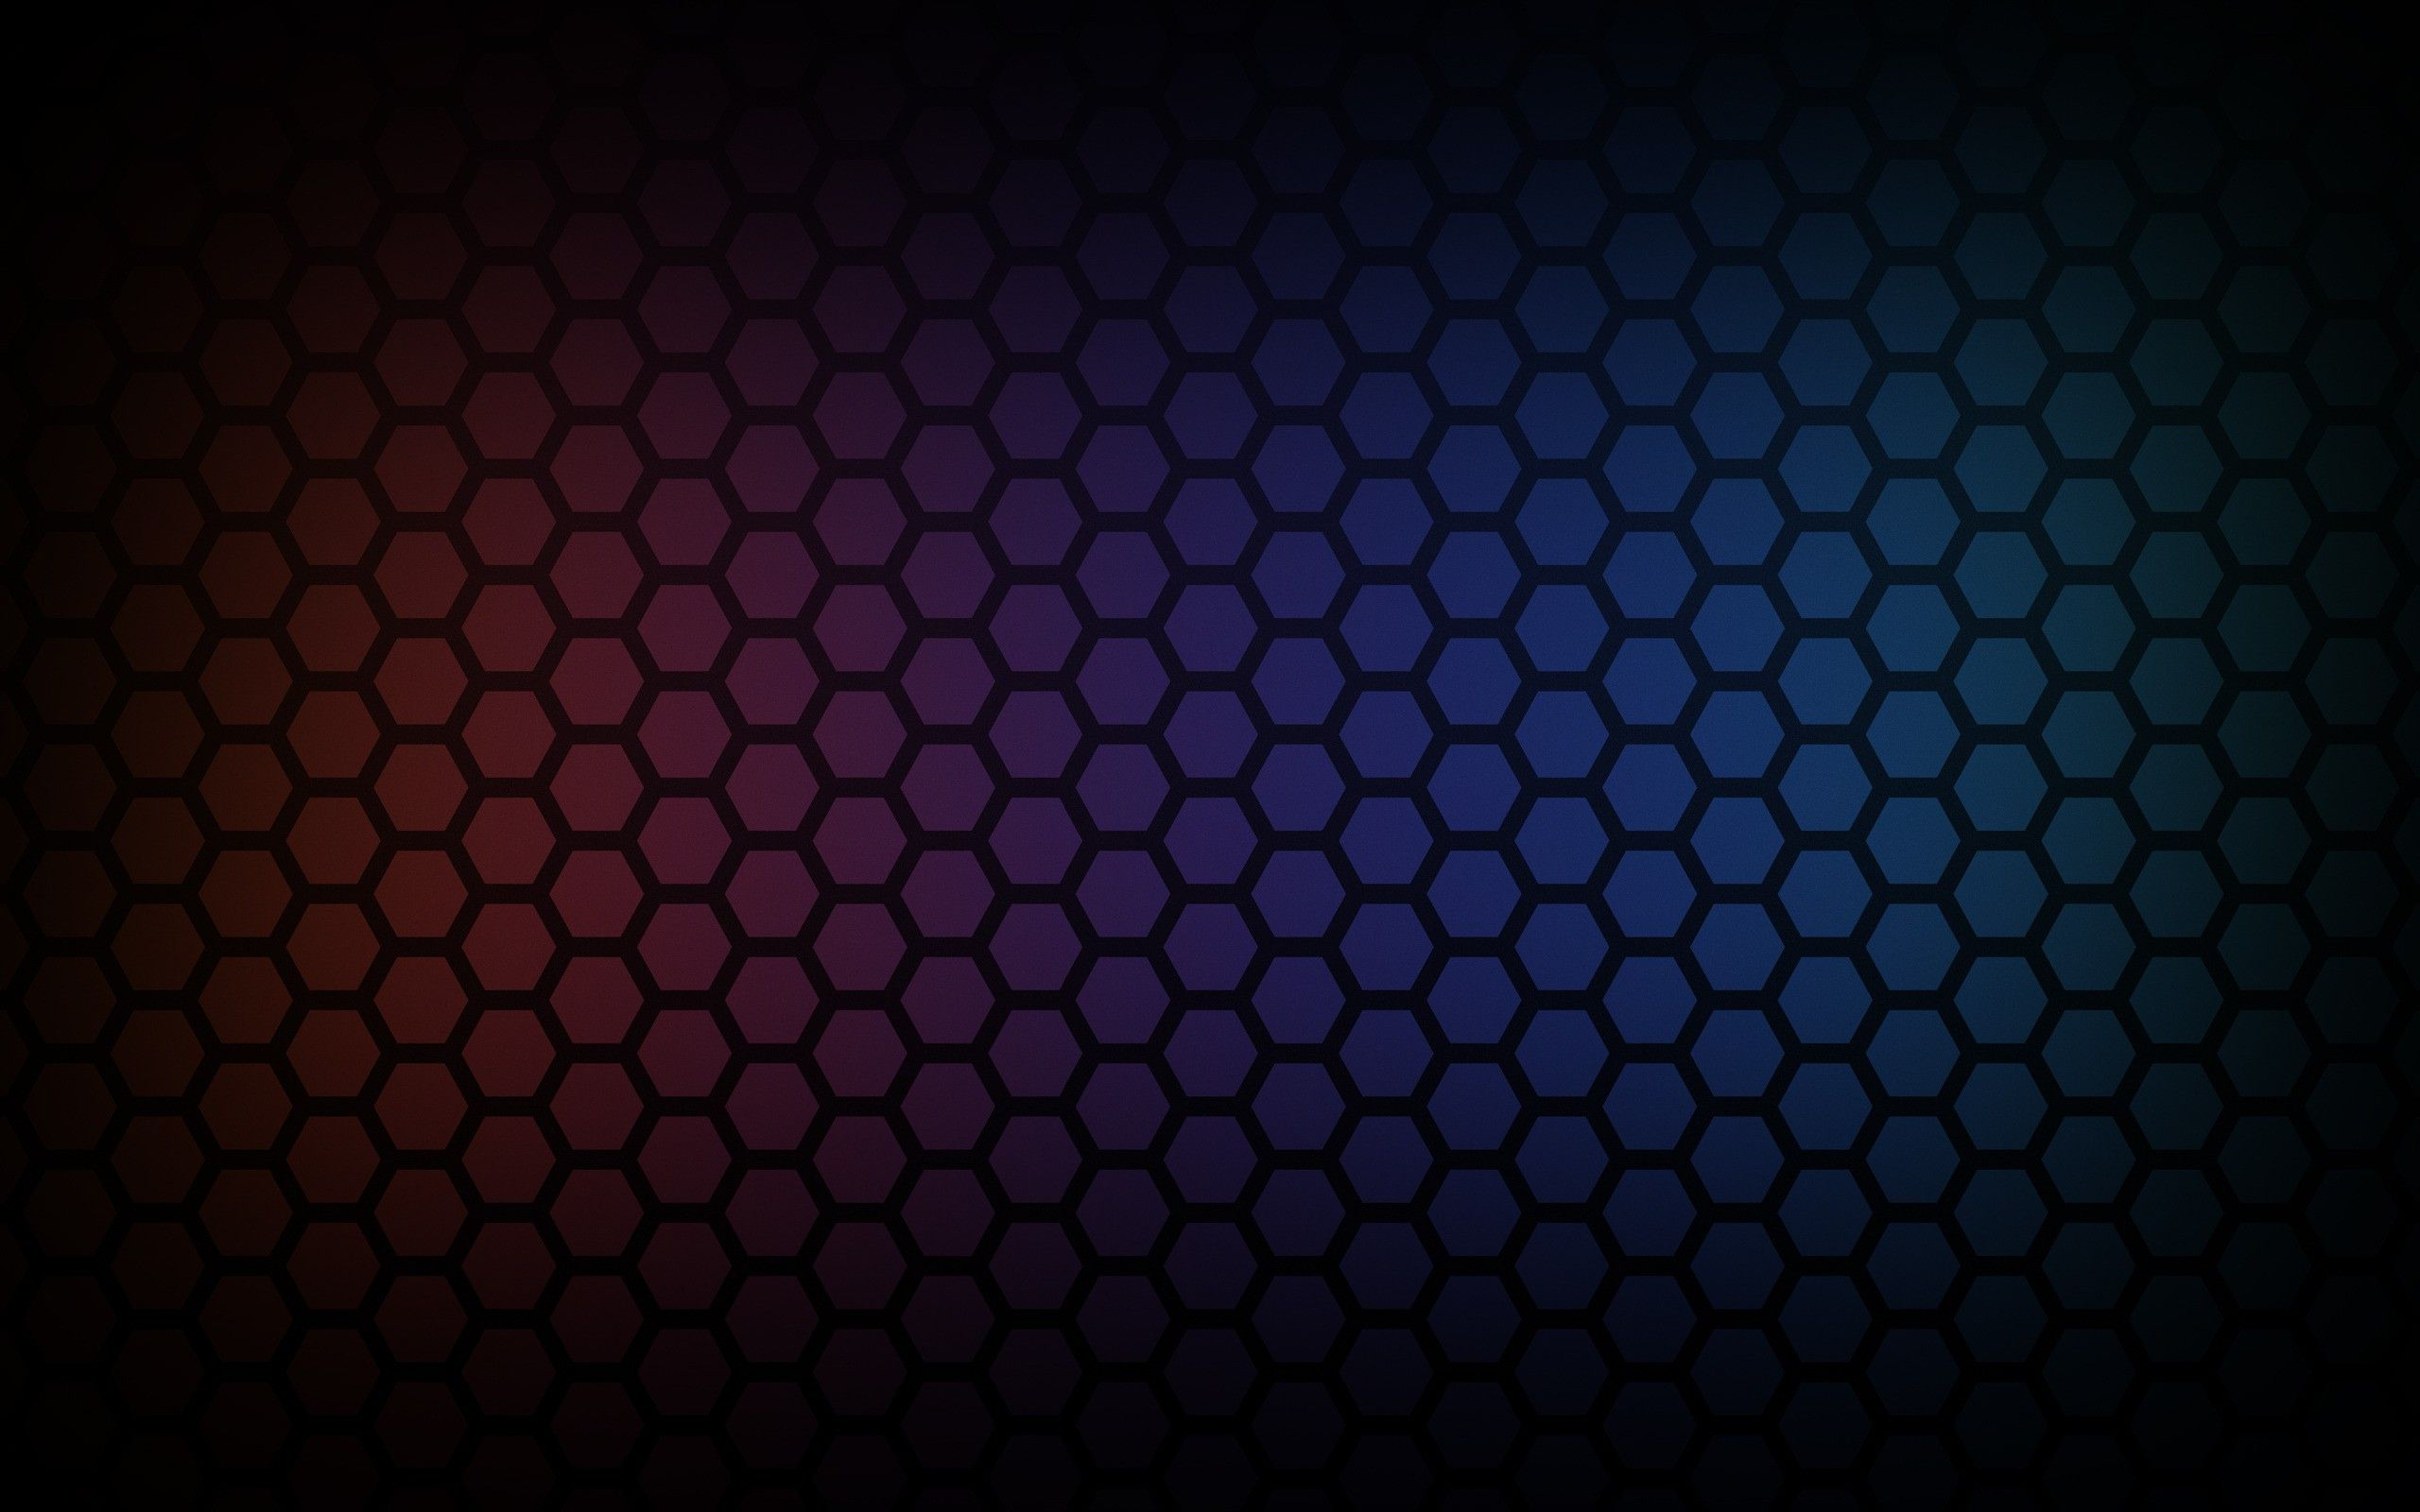 General 2560x1600 Hexagon Colorful Pattern Gradient